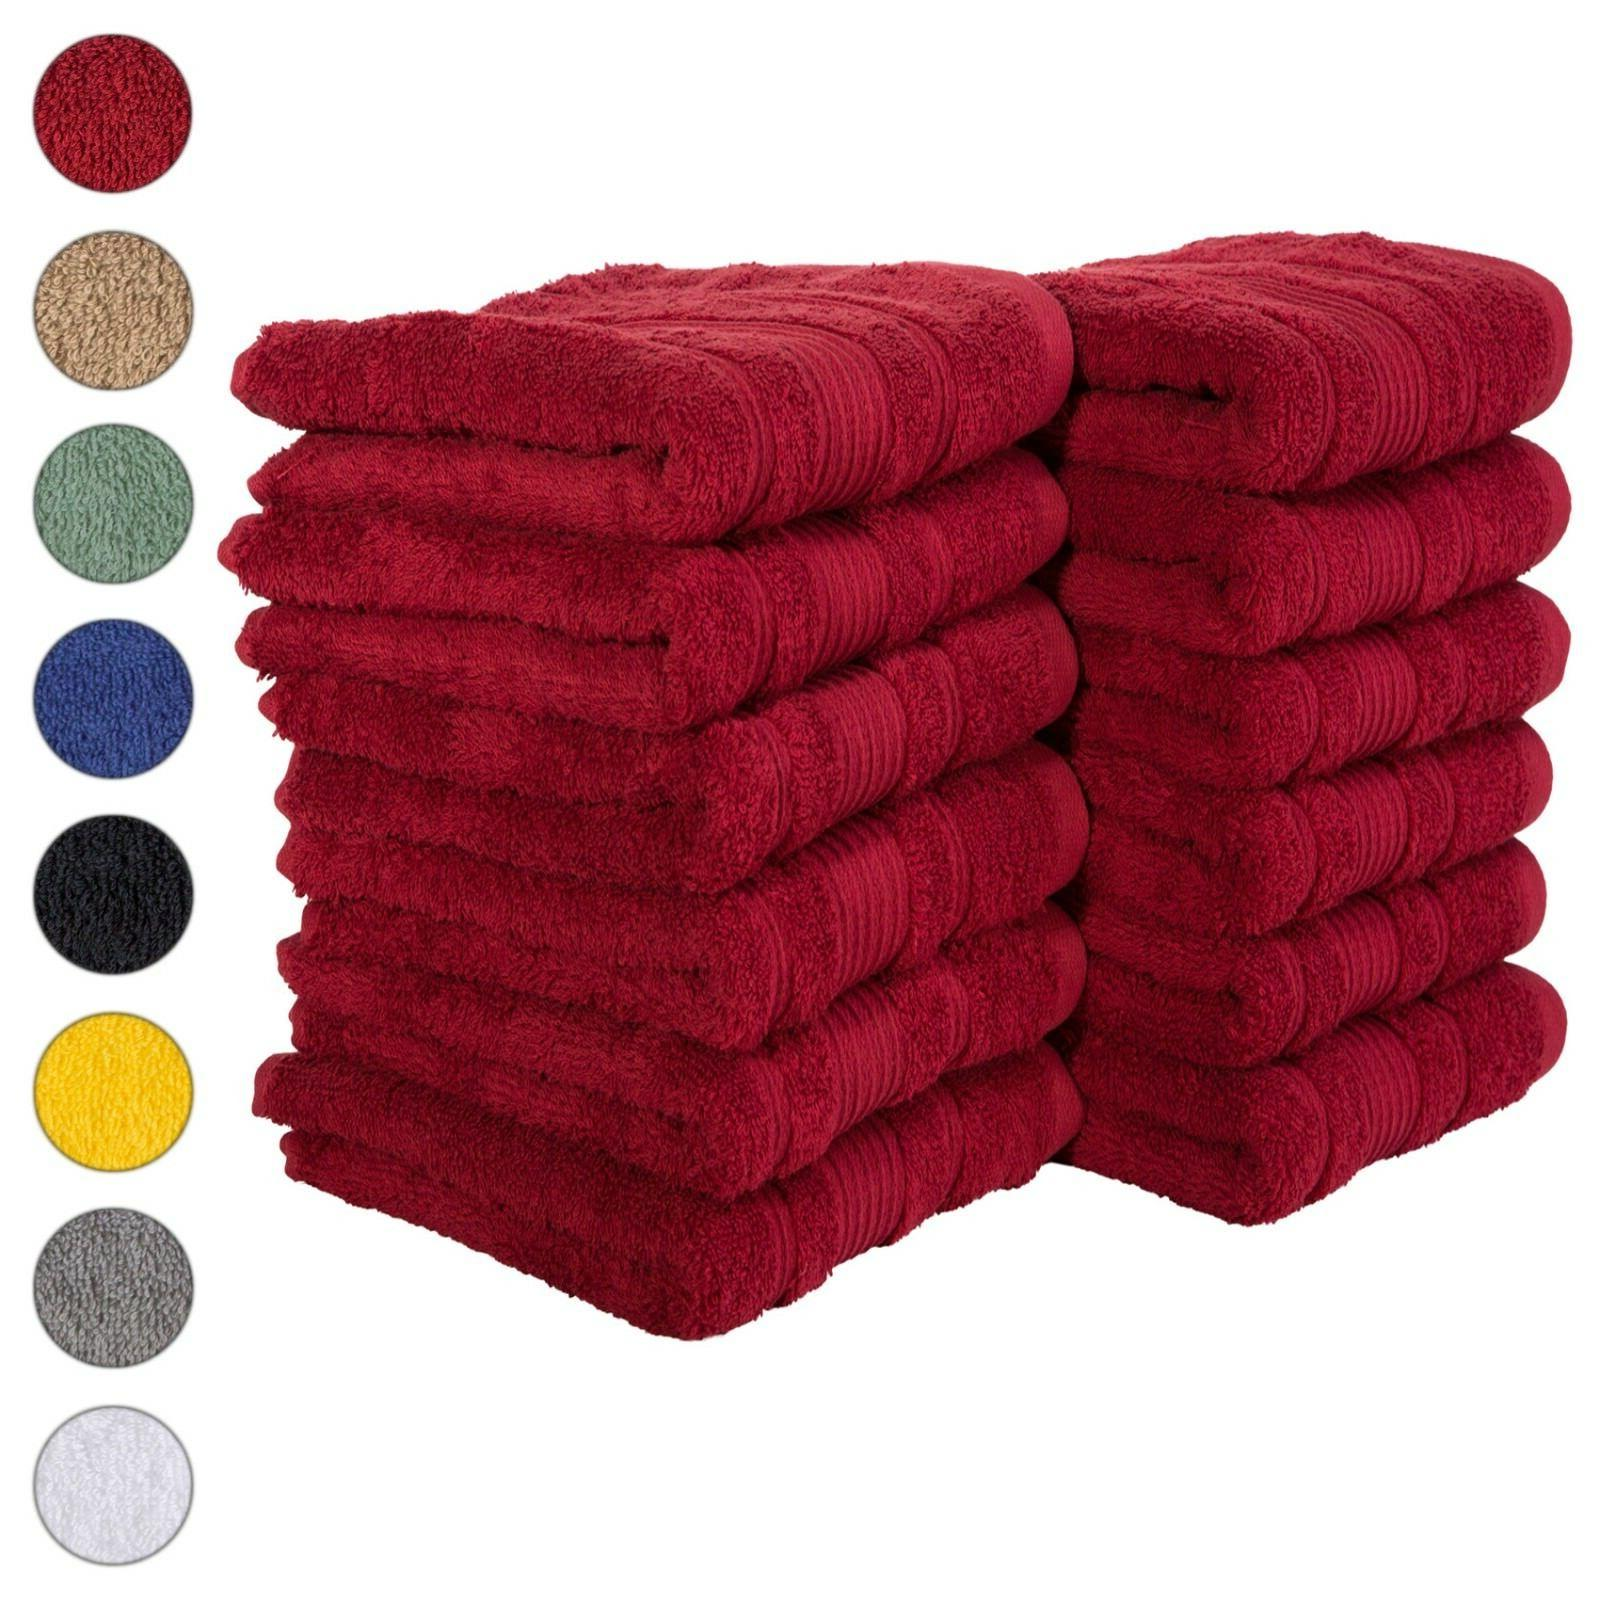 NEW BURGUNDY Color ULTRA SUPER SOFT LUXURY PURE TURKISH 100%